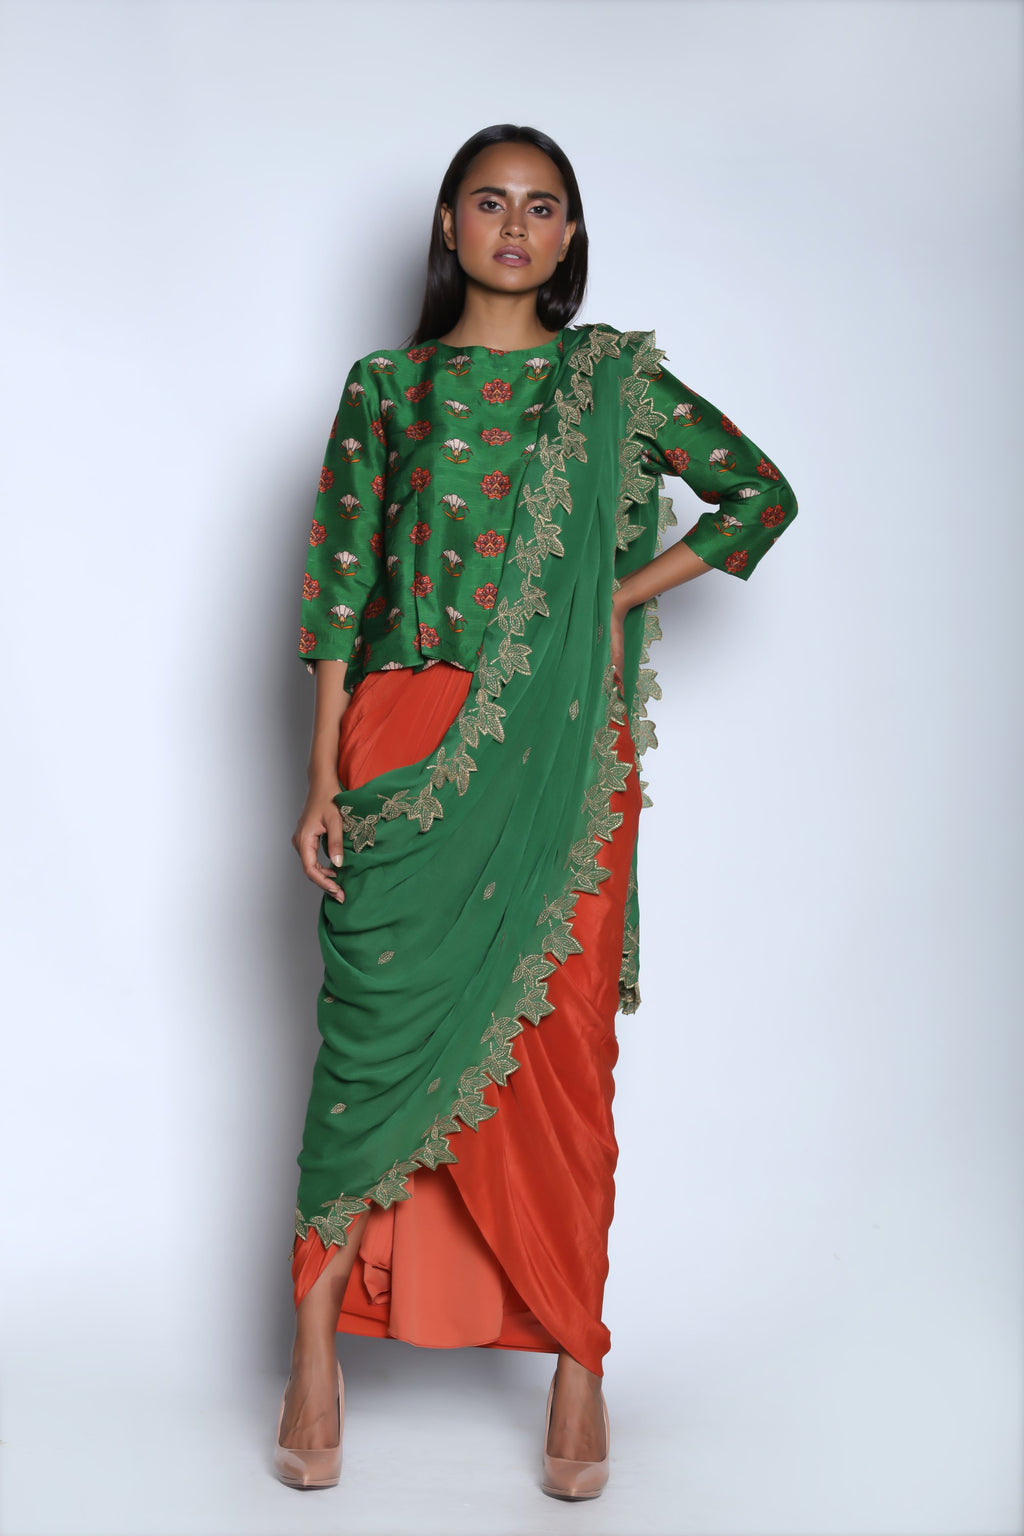 Nautanky - Dark Green & Orange Ruffle Skirt Set - INDIASPOPUP.COM